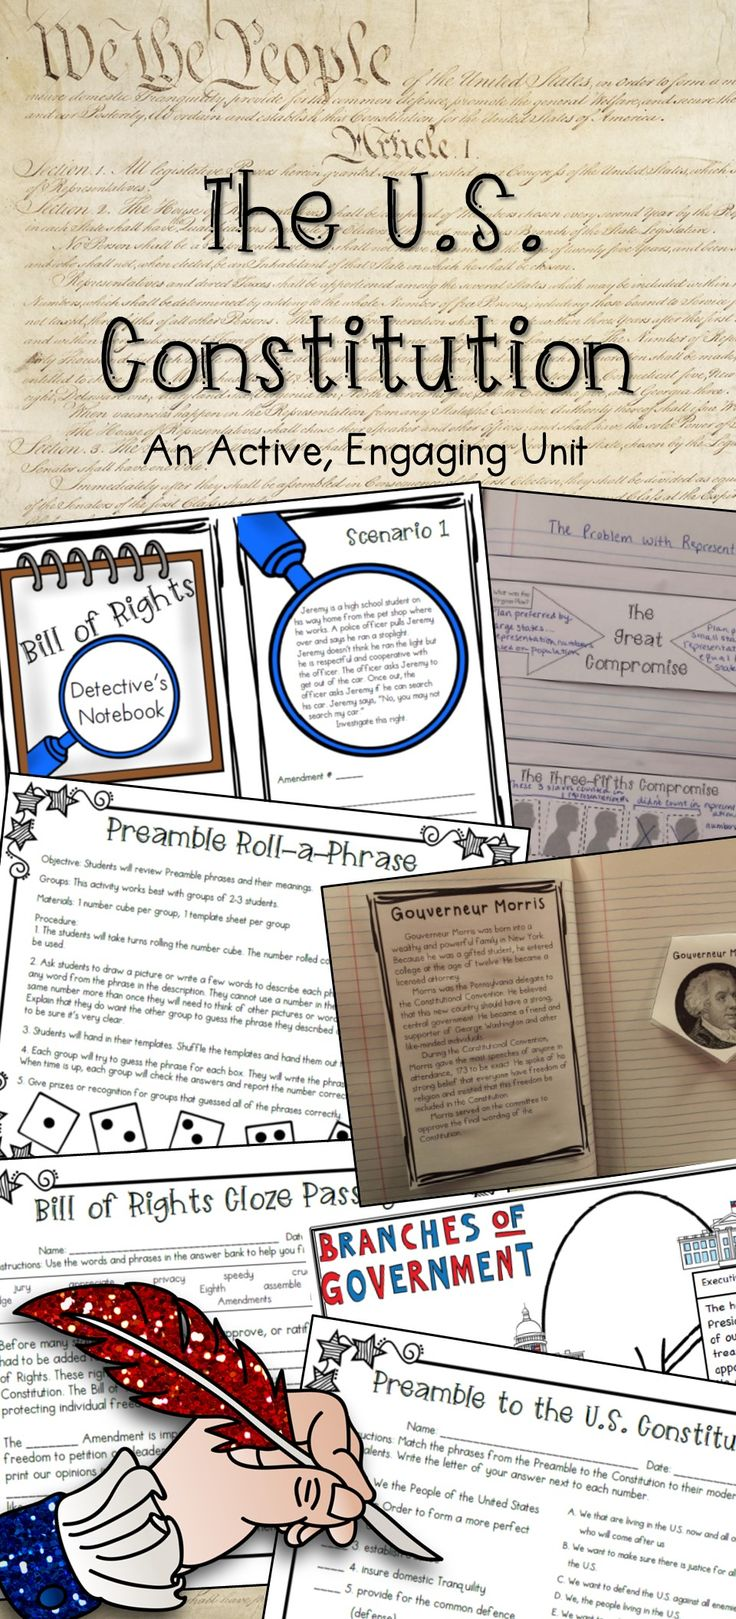 Are you looking for a fresh, engaging, active Constitution unit? You've found it! The activities in this unit will not only help your students learn about the Constitution… they will bring excitement and engagement to your classroom! All of the activities included in this unit are student favorites!